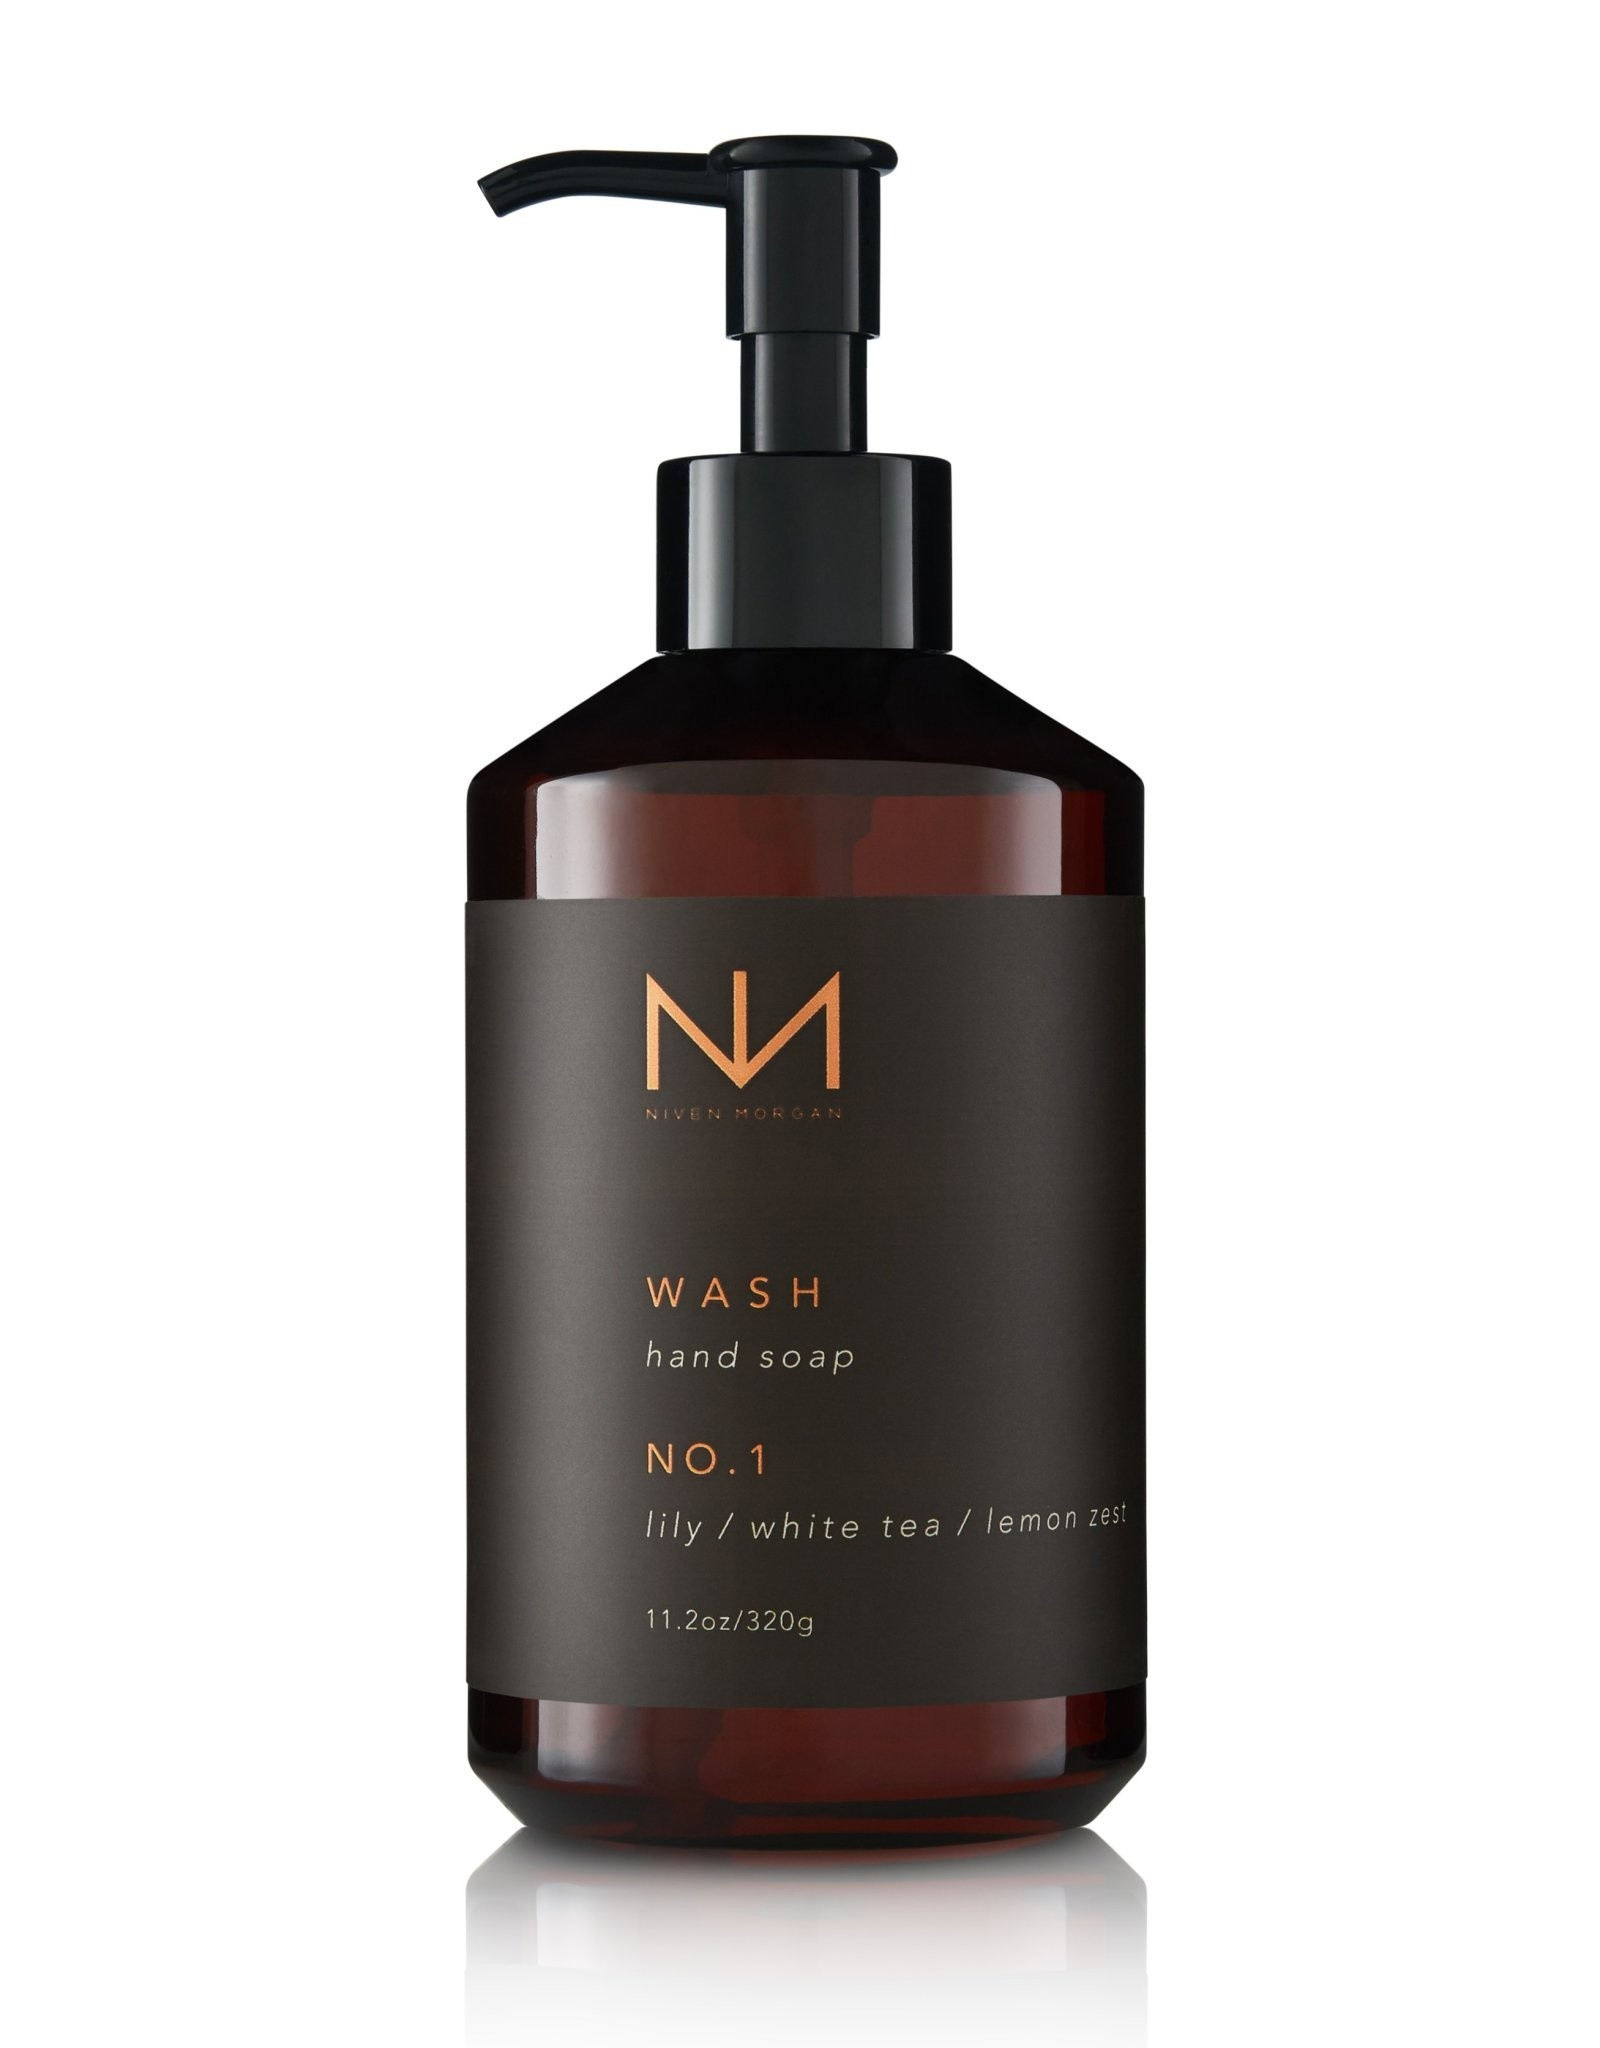 NM Hydrate Hand Soap No. 1